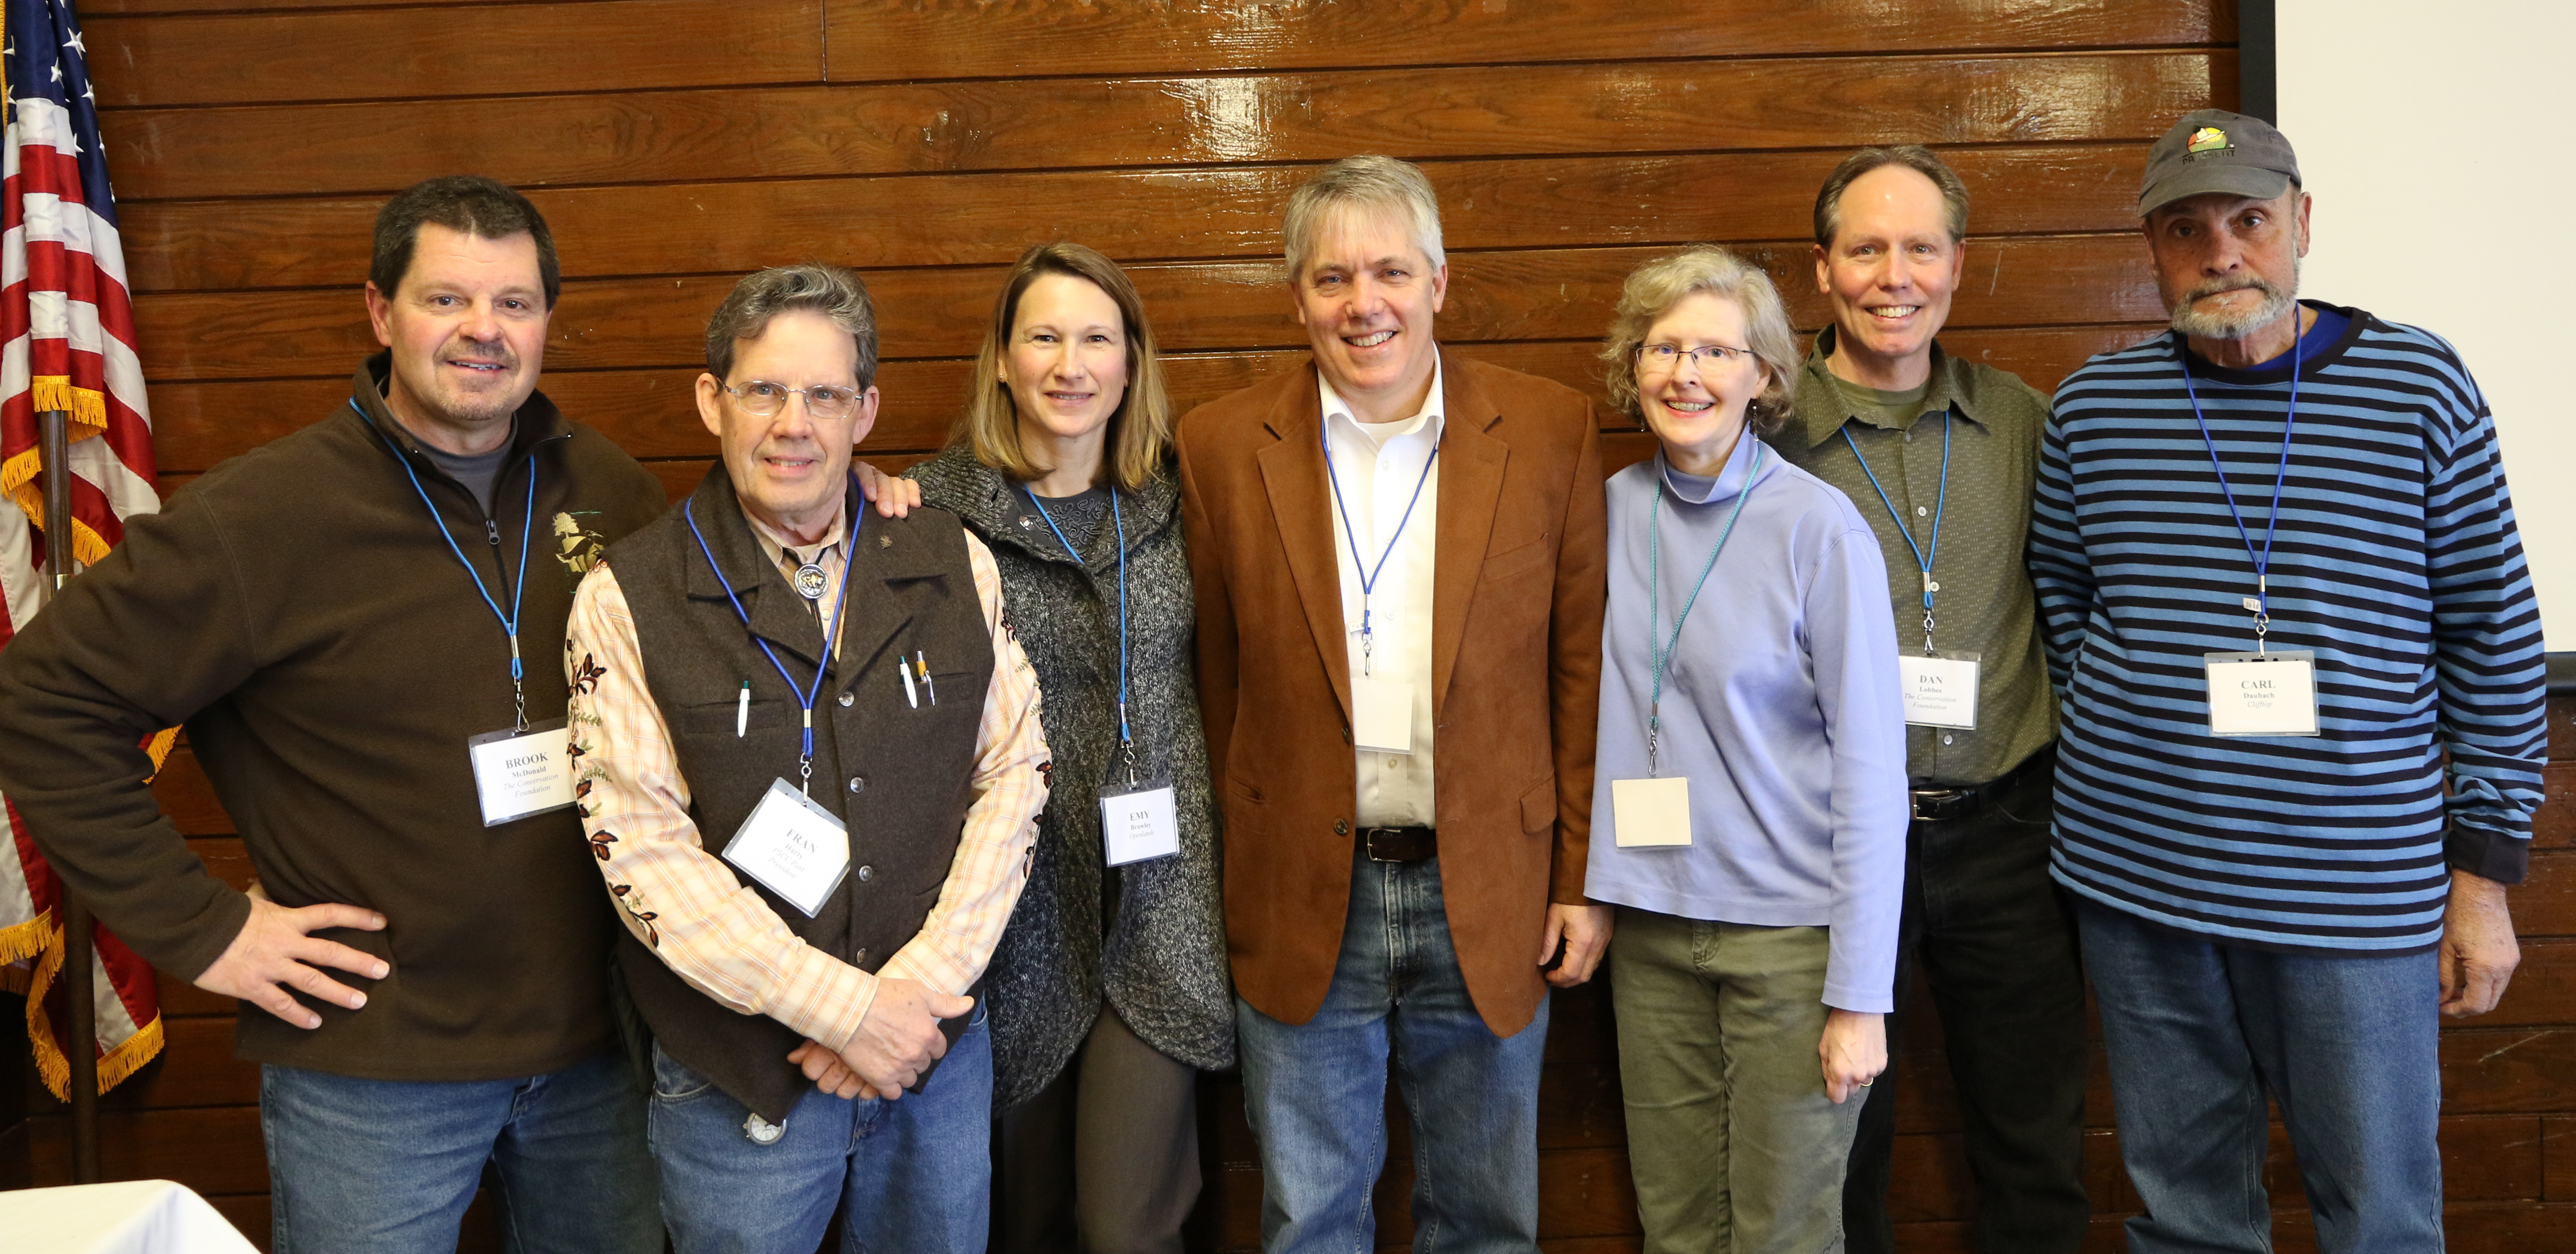 Brook McDonald, The Conservation Foundation; Fran Harty; Emy Brawley, Openlands; Steve Barg, Jo Daviess Conservation Foundation; Lisa Haderlein, Land Conservancy of McHenry County; Dan Lobbes, The Conservation Founation; and Carl Daubach, Clifftop